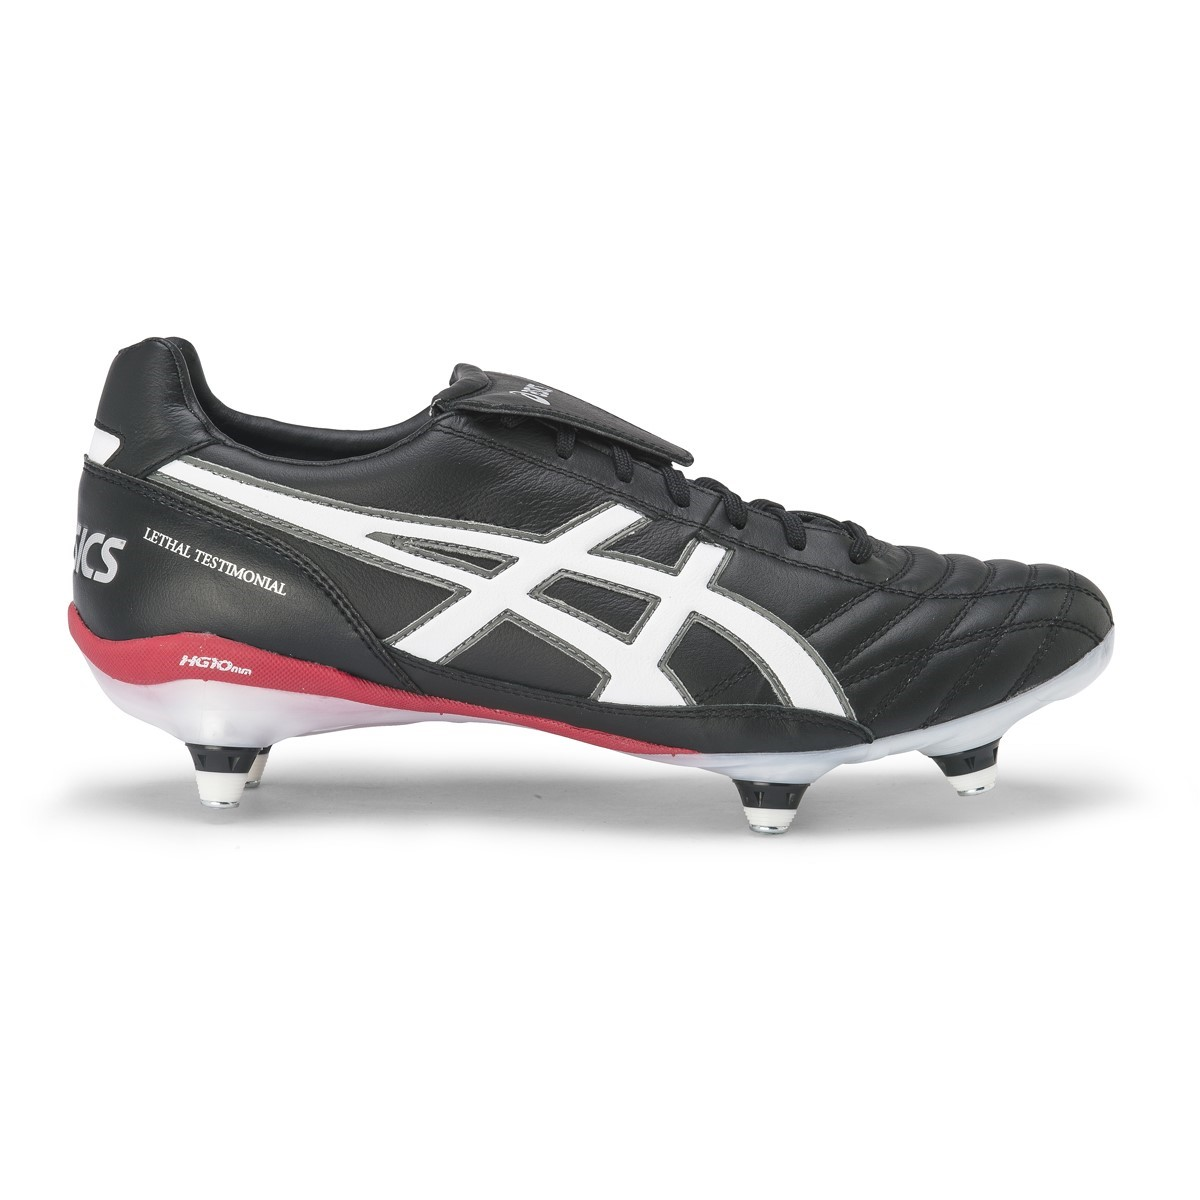 5394858072616 Asics Lethal Testimonial 3 ST - Mens Football Boots